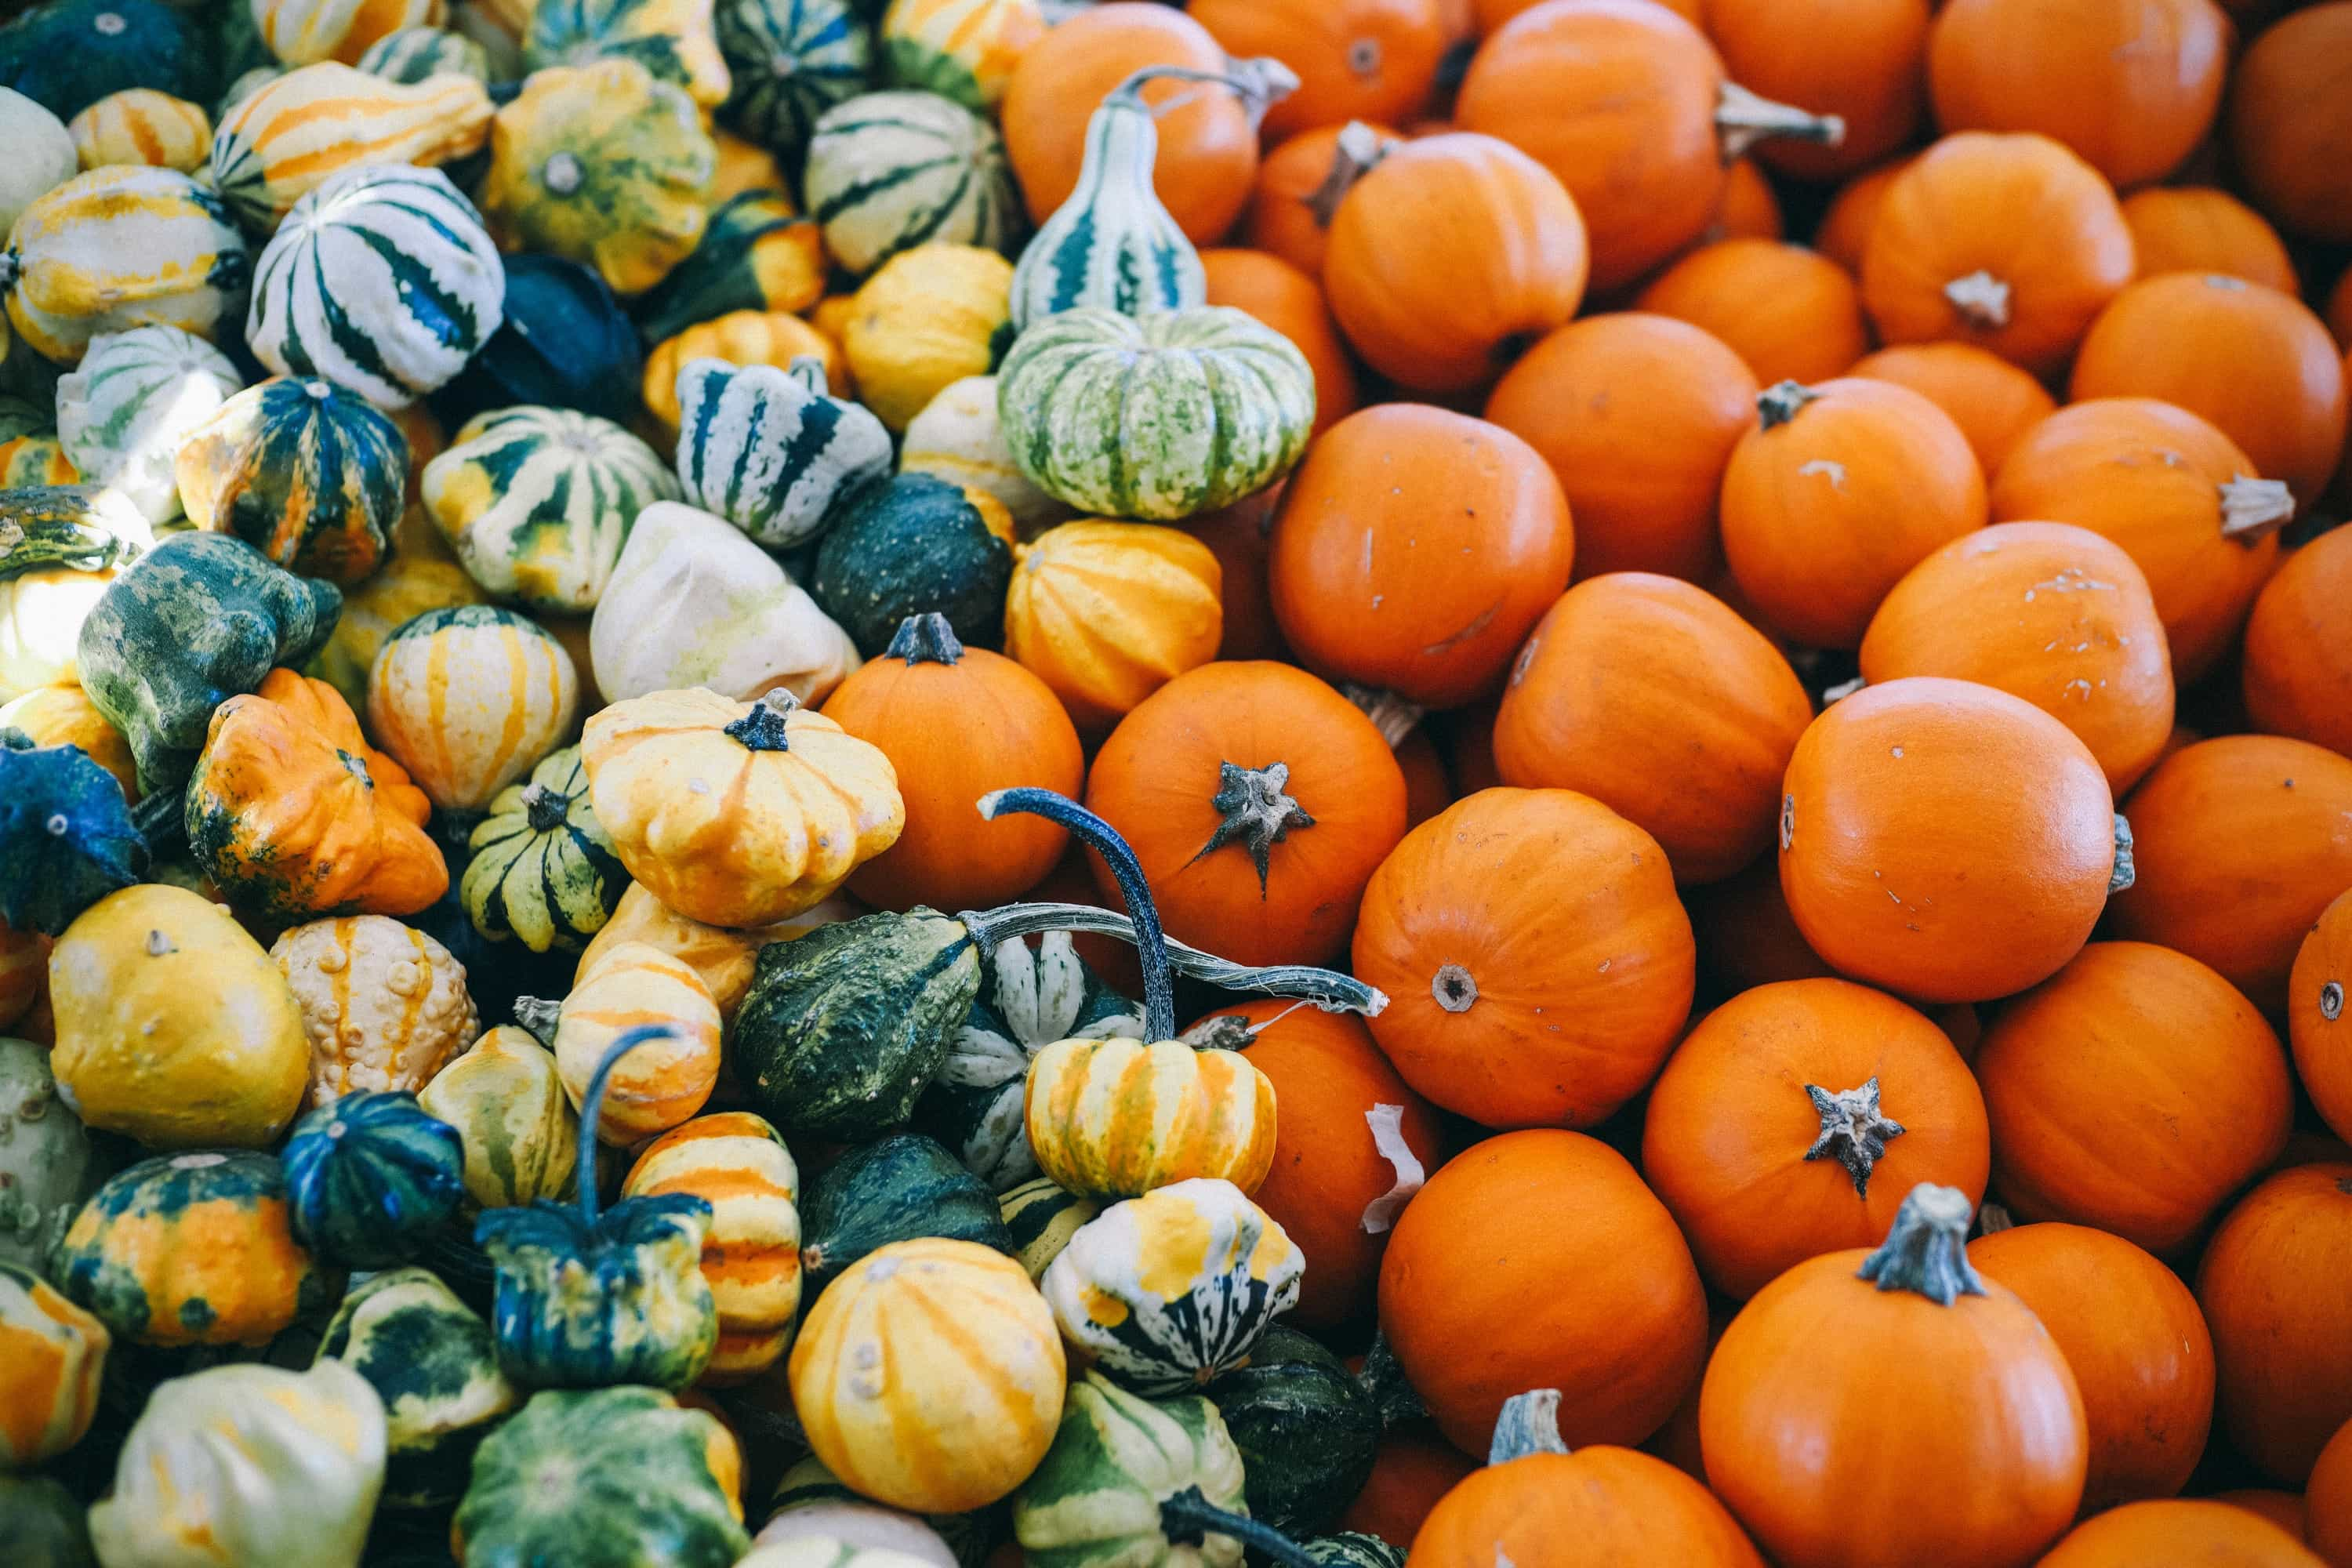 Pumpkins and gourds outside